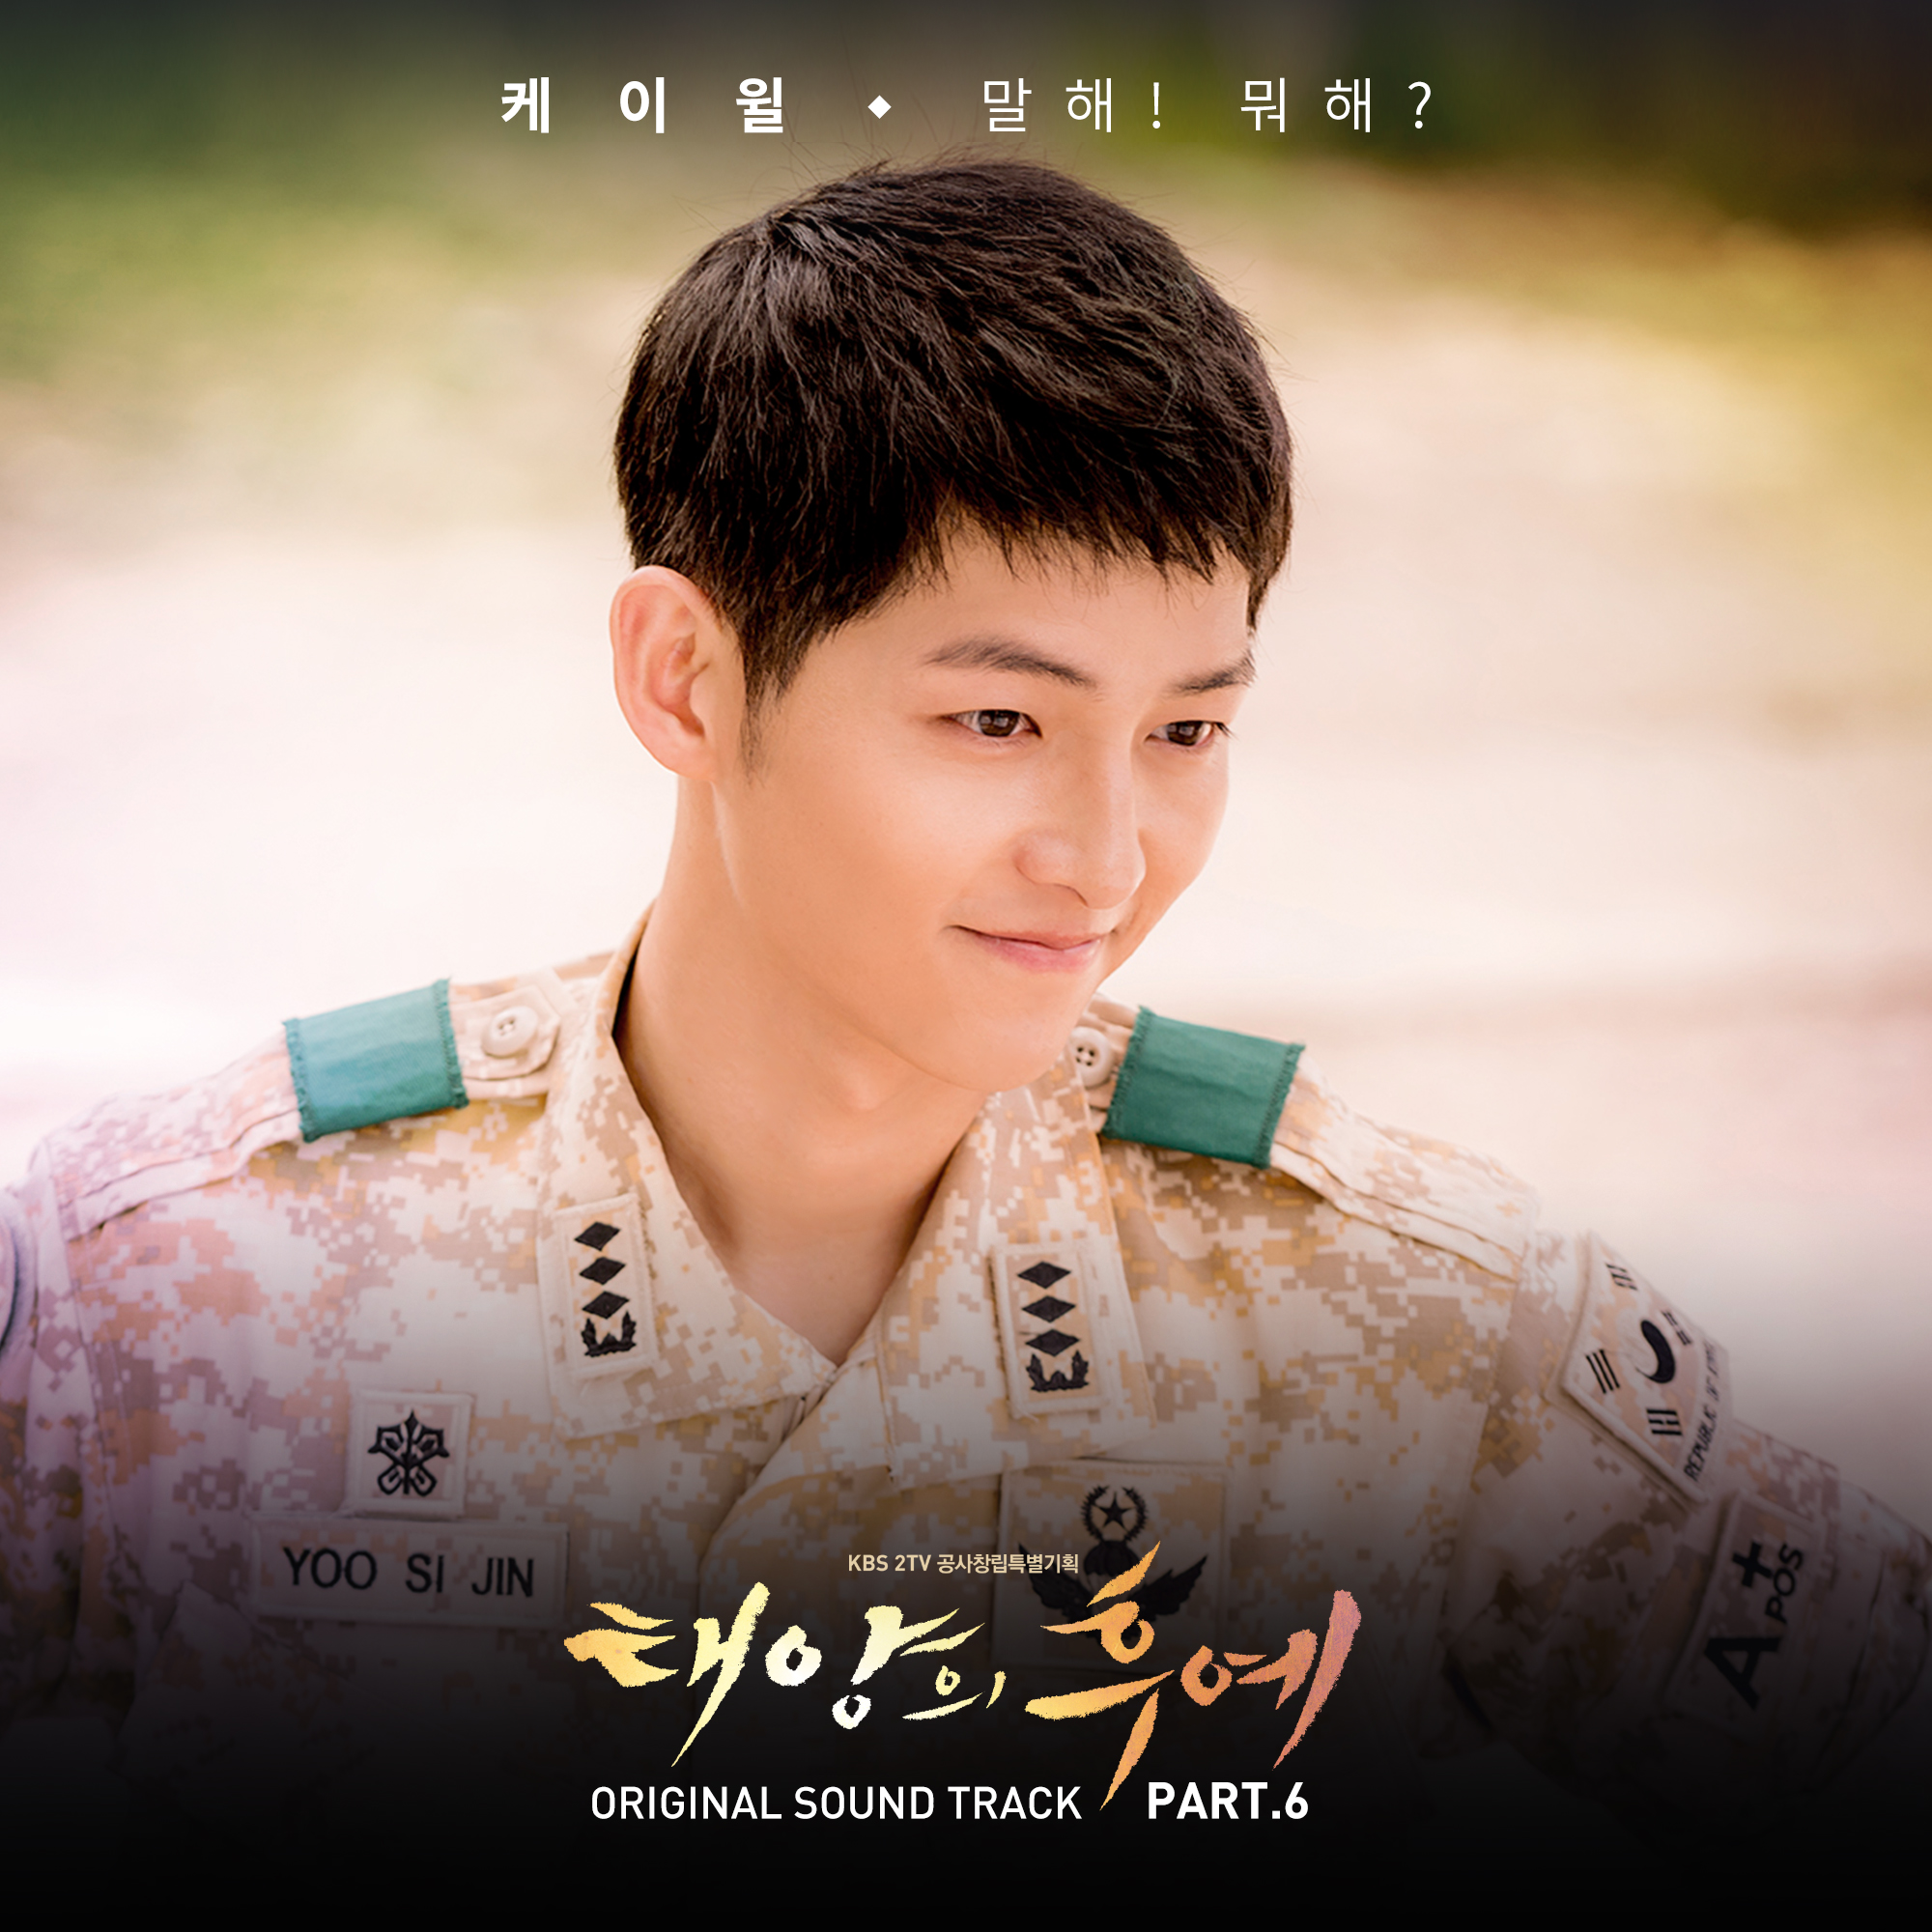 K.Will - Descendants of The Sun OST Part.6 - Say it! What Are You Doing? K2Ost free mp3 download korean song kpop kdrama ost lyric 320 kbps